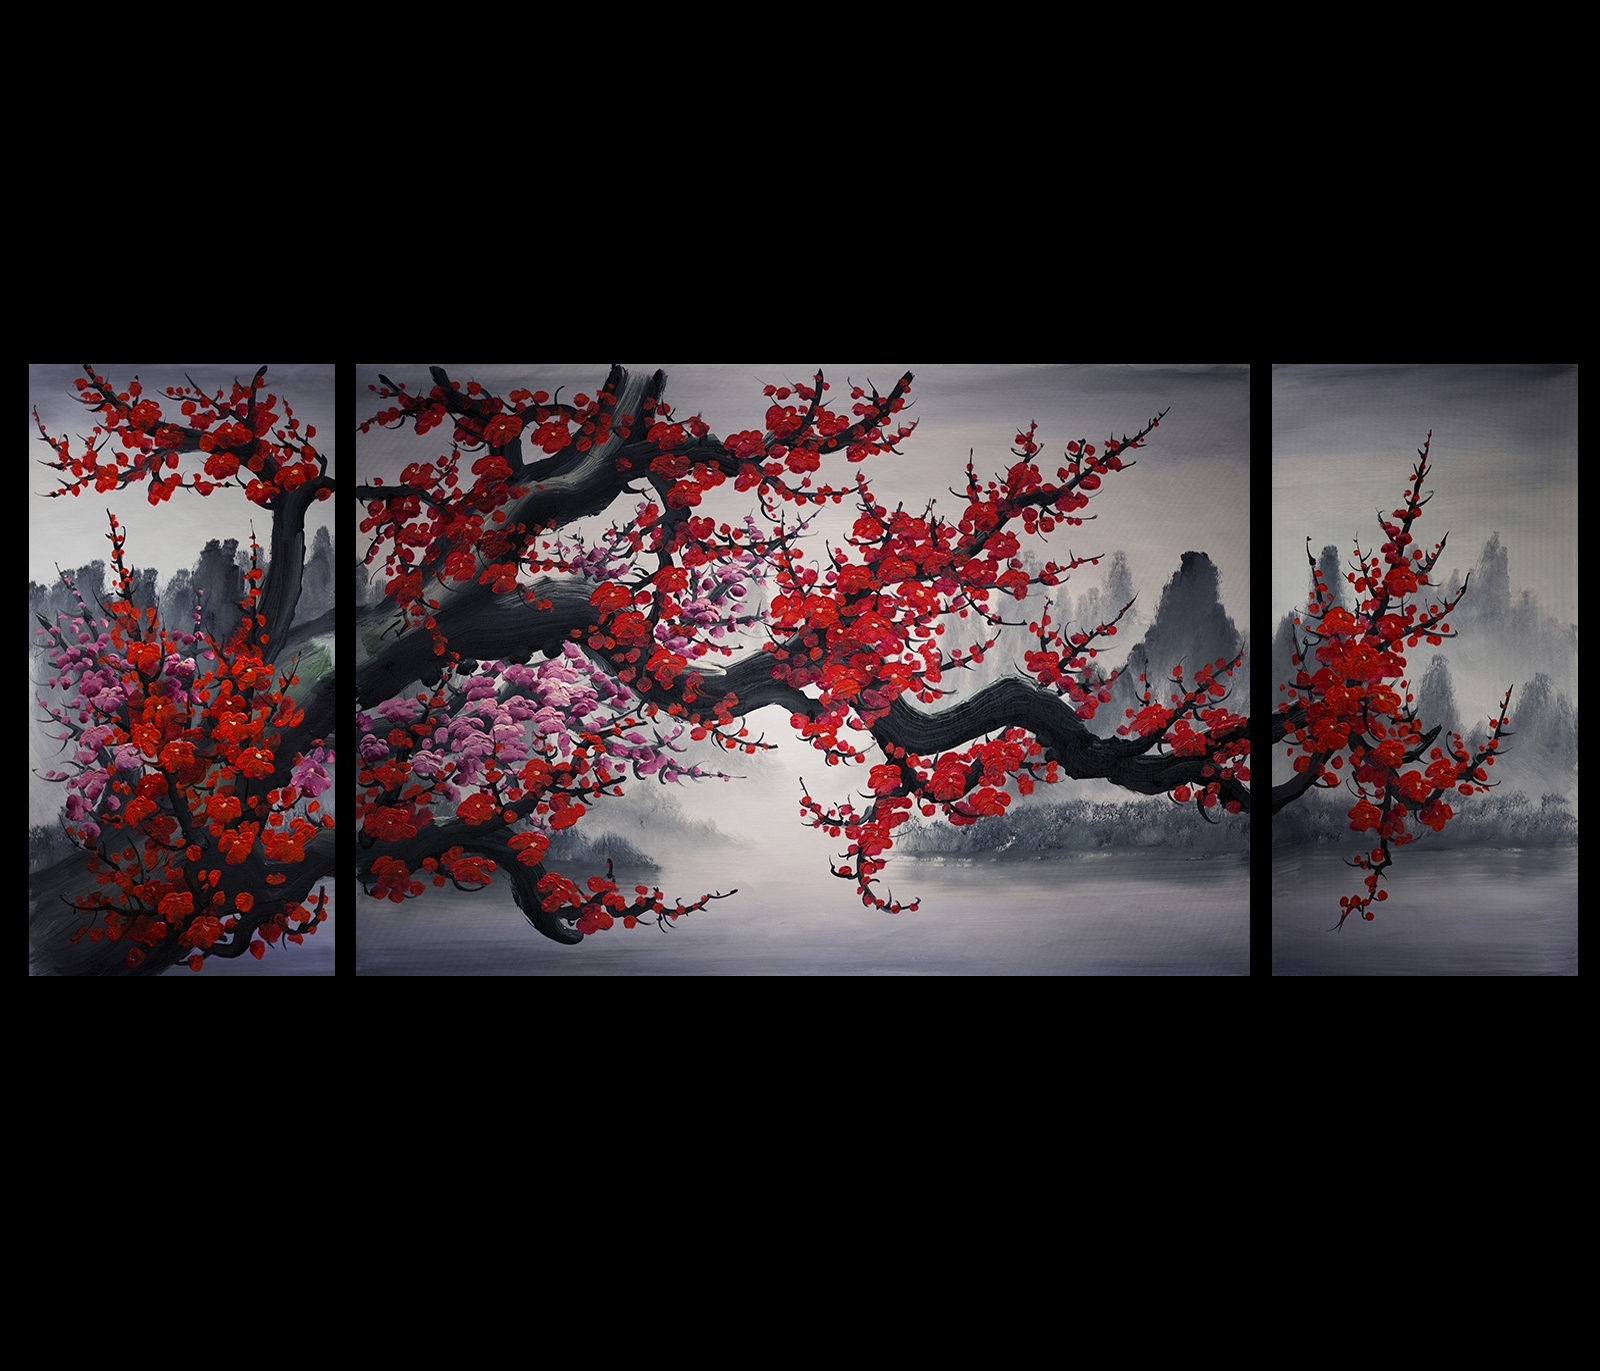 Chinese Cherry Blossom Painting Original Modern Wall Art Decor Within Newest Asian Wall Art Panels (View 3 of 15)